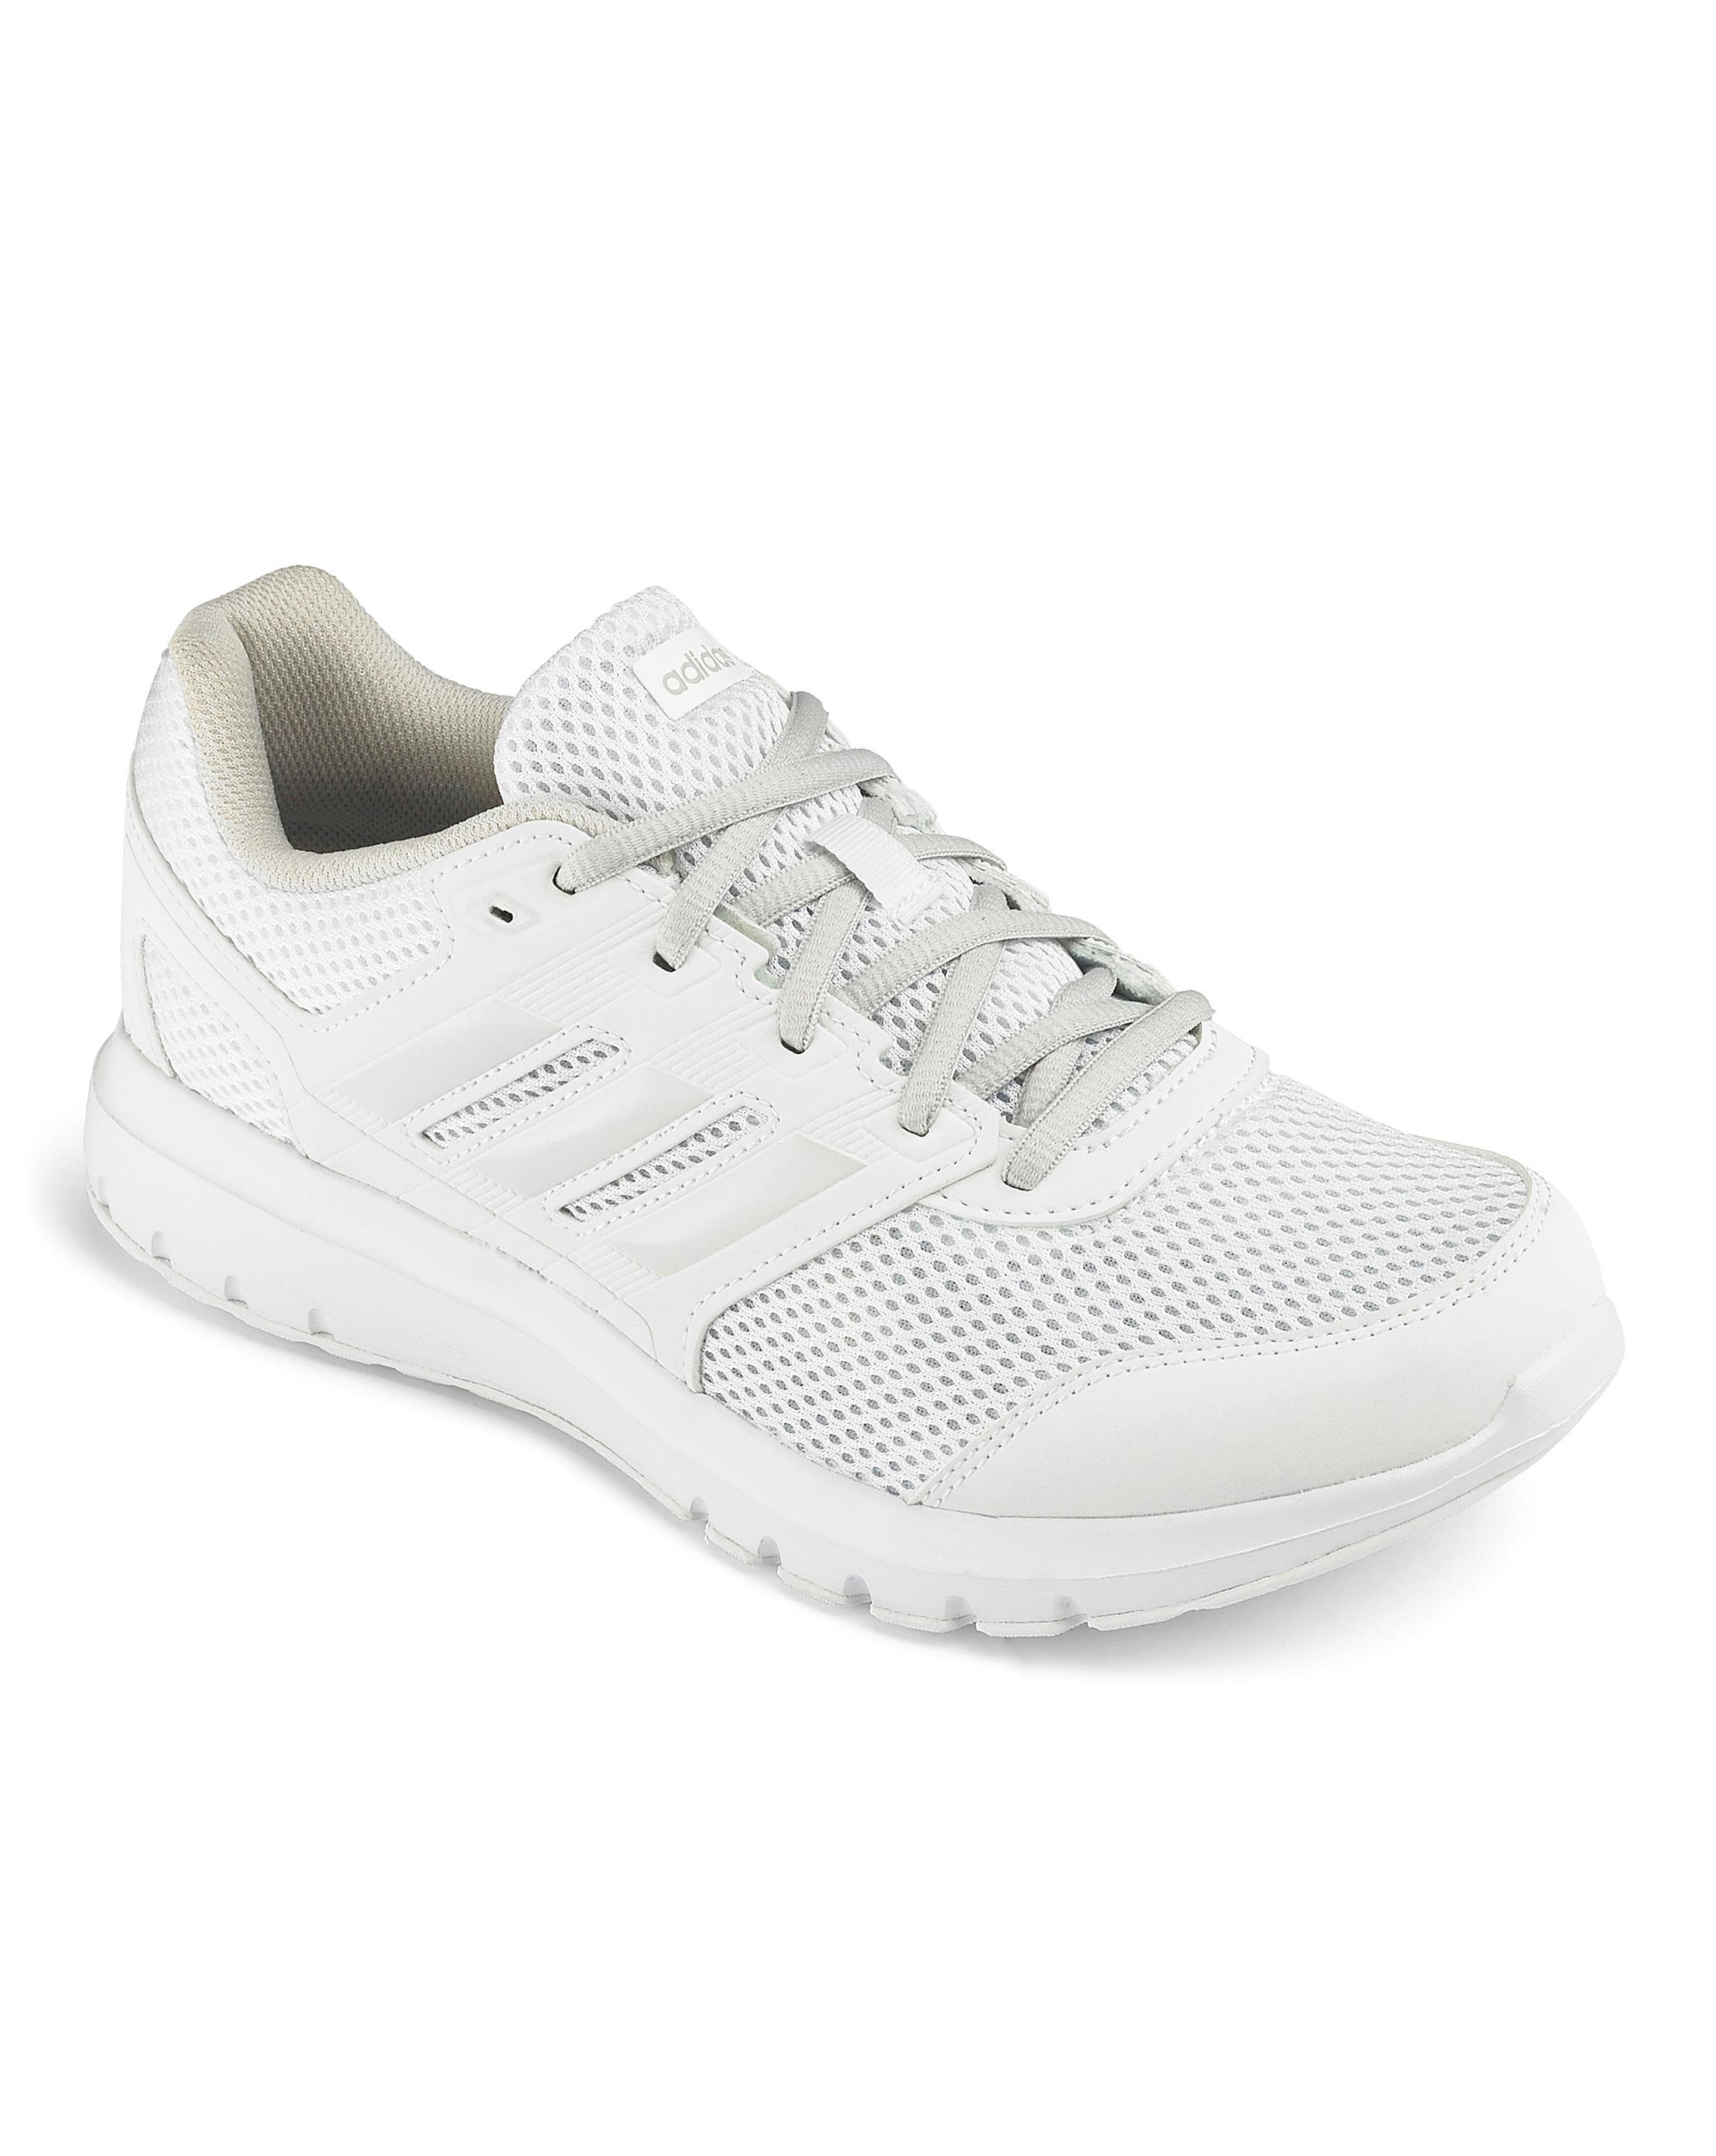 hot sales d1f91 35082 Lyst - Simply Be Adidas Duramo Lite 2 0 Sneakers in White